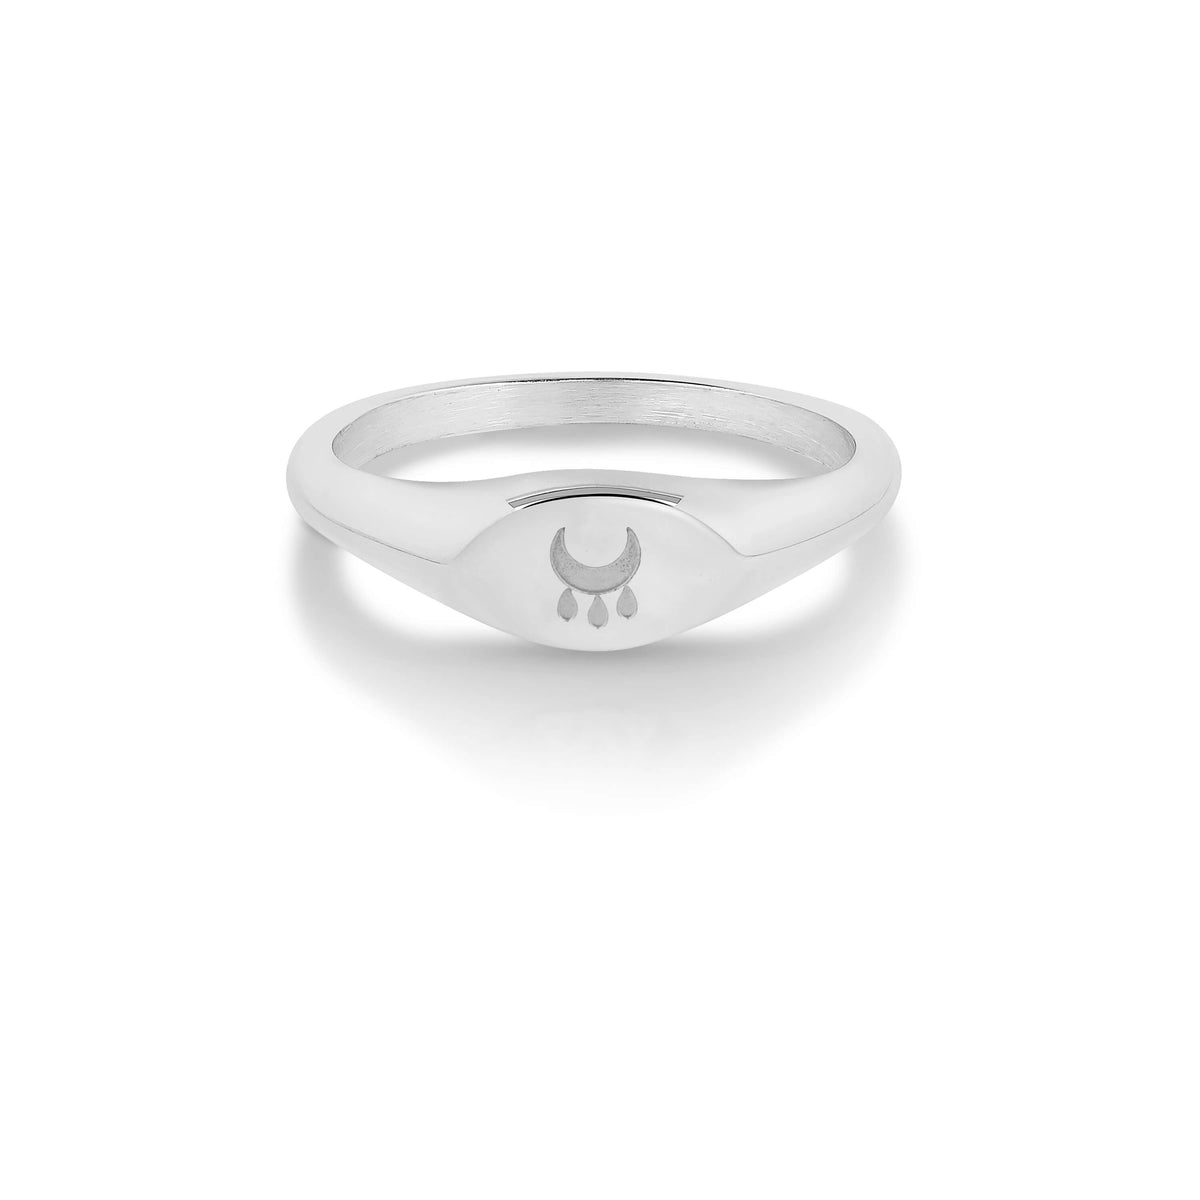 Blessings Mini Signet Ring